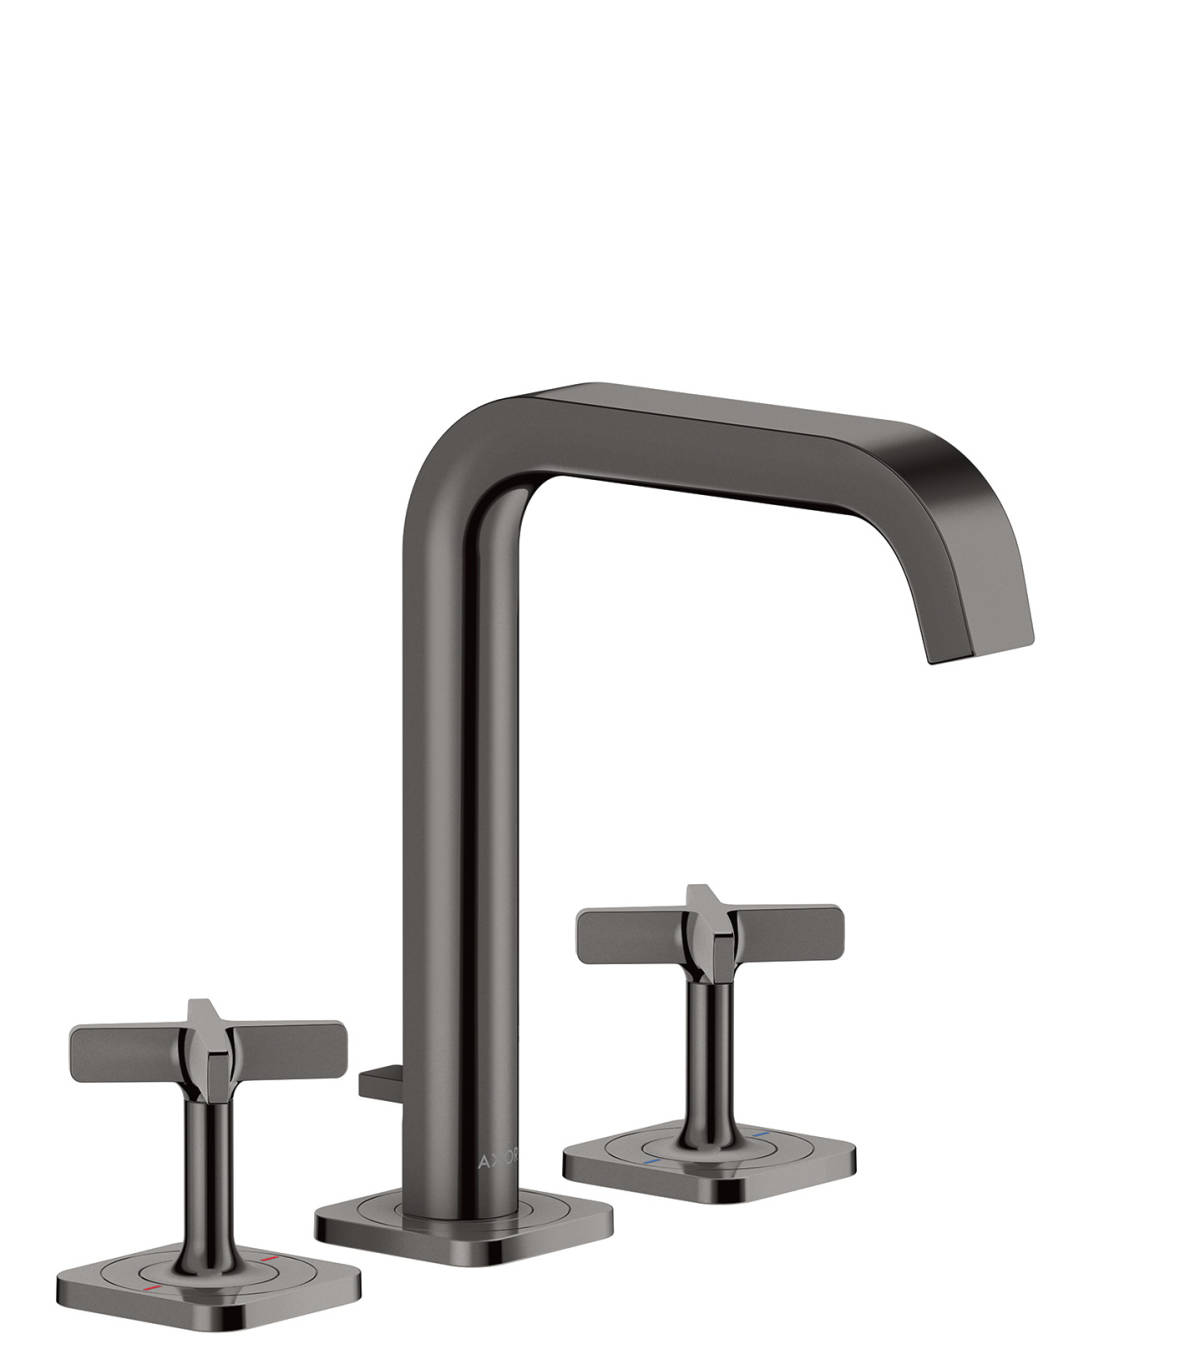 3-hole basin mixer 170 with escutcheons and pop-up waste set, Polished Black Chrome, 36108330